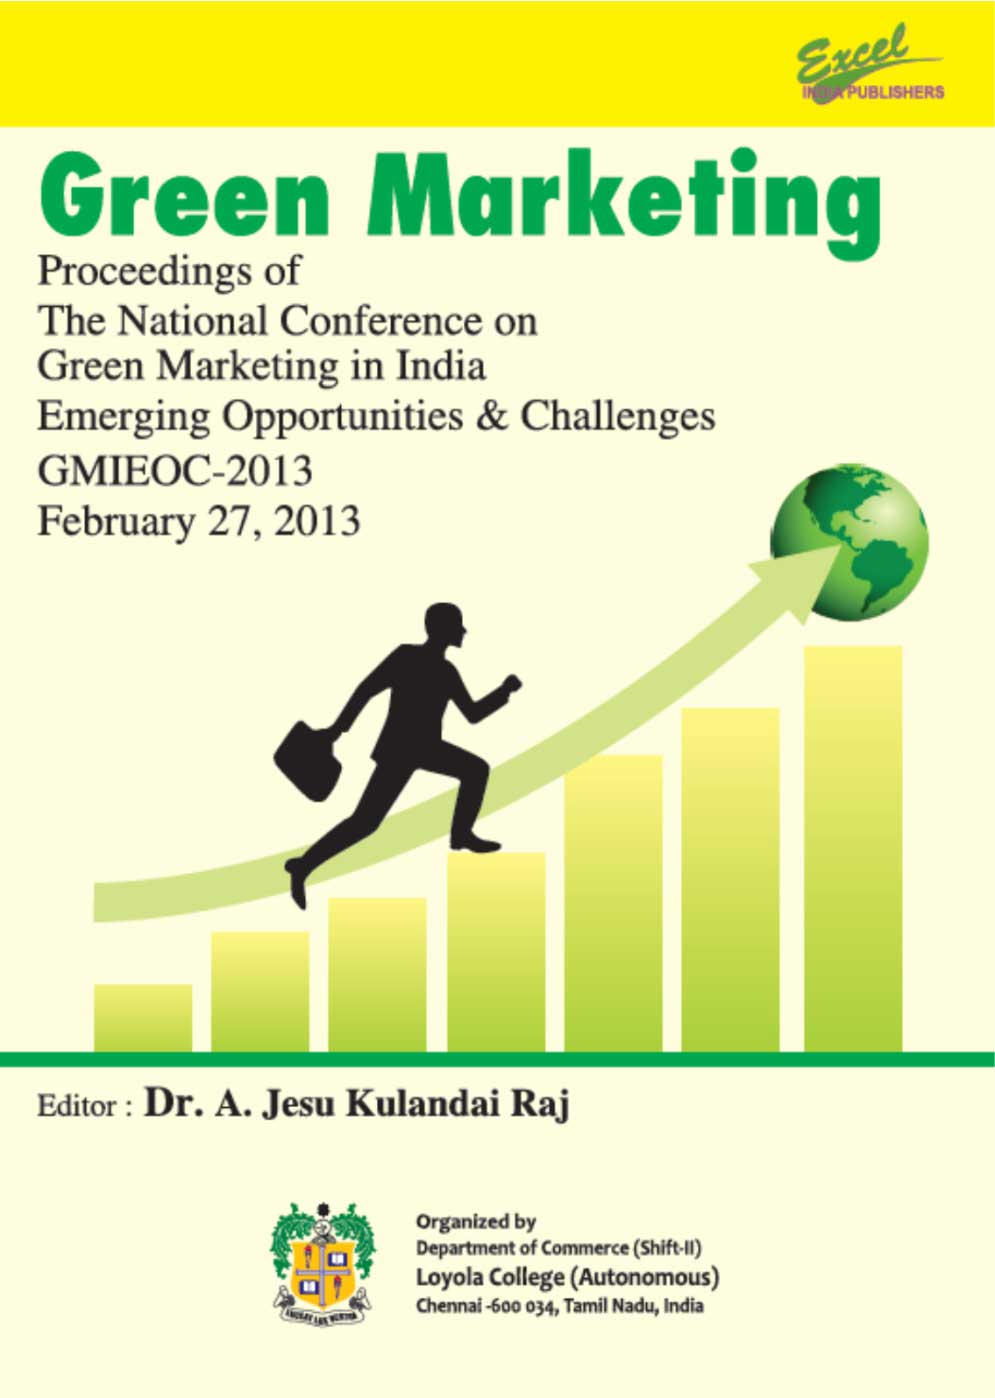 history of green marketing in india Tea makers are adding green tea in their portfolio in india amid health awareness green tea consumption in india is of marketing for green tea in the.